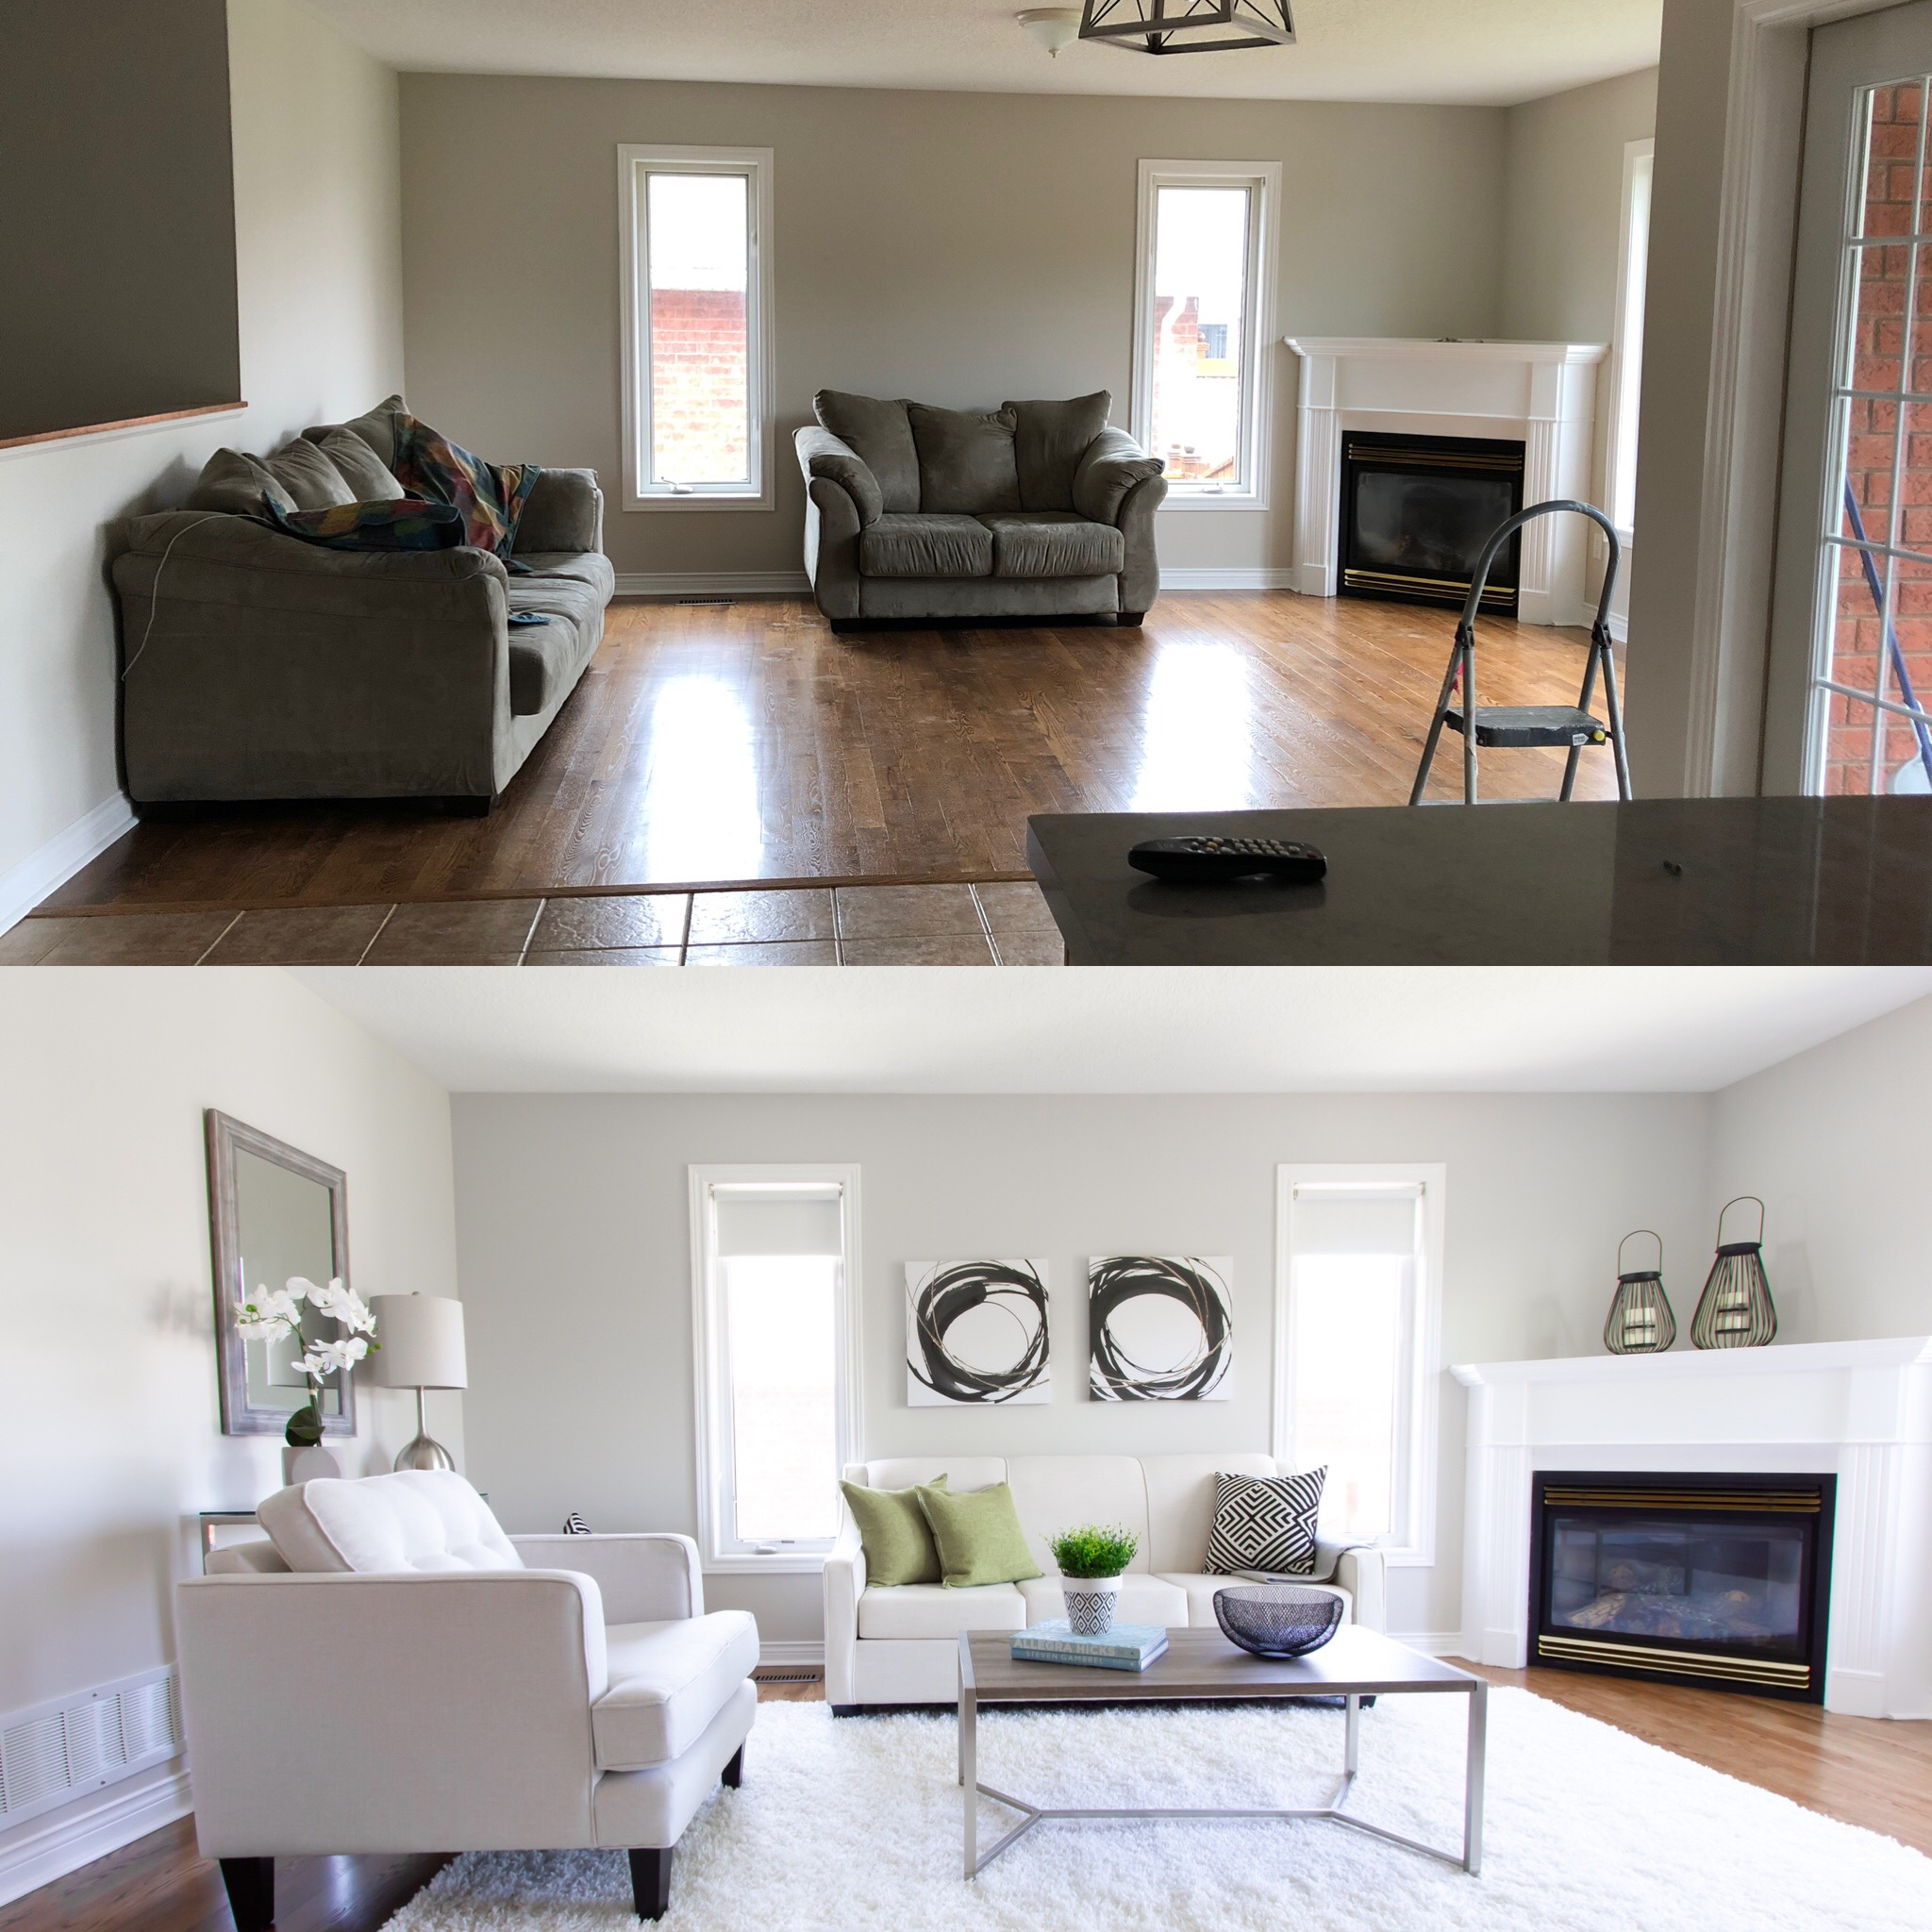 Before & After of Family Room